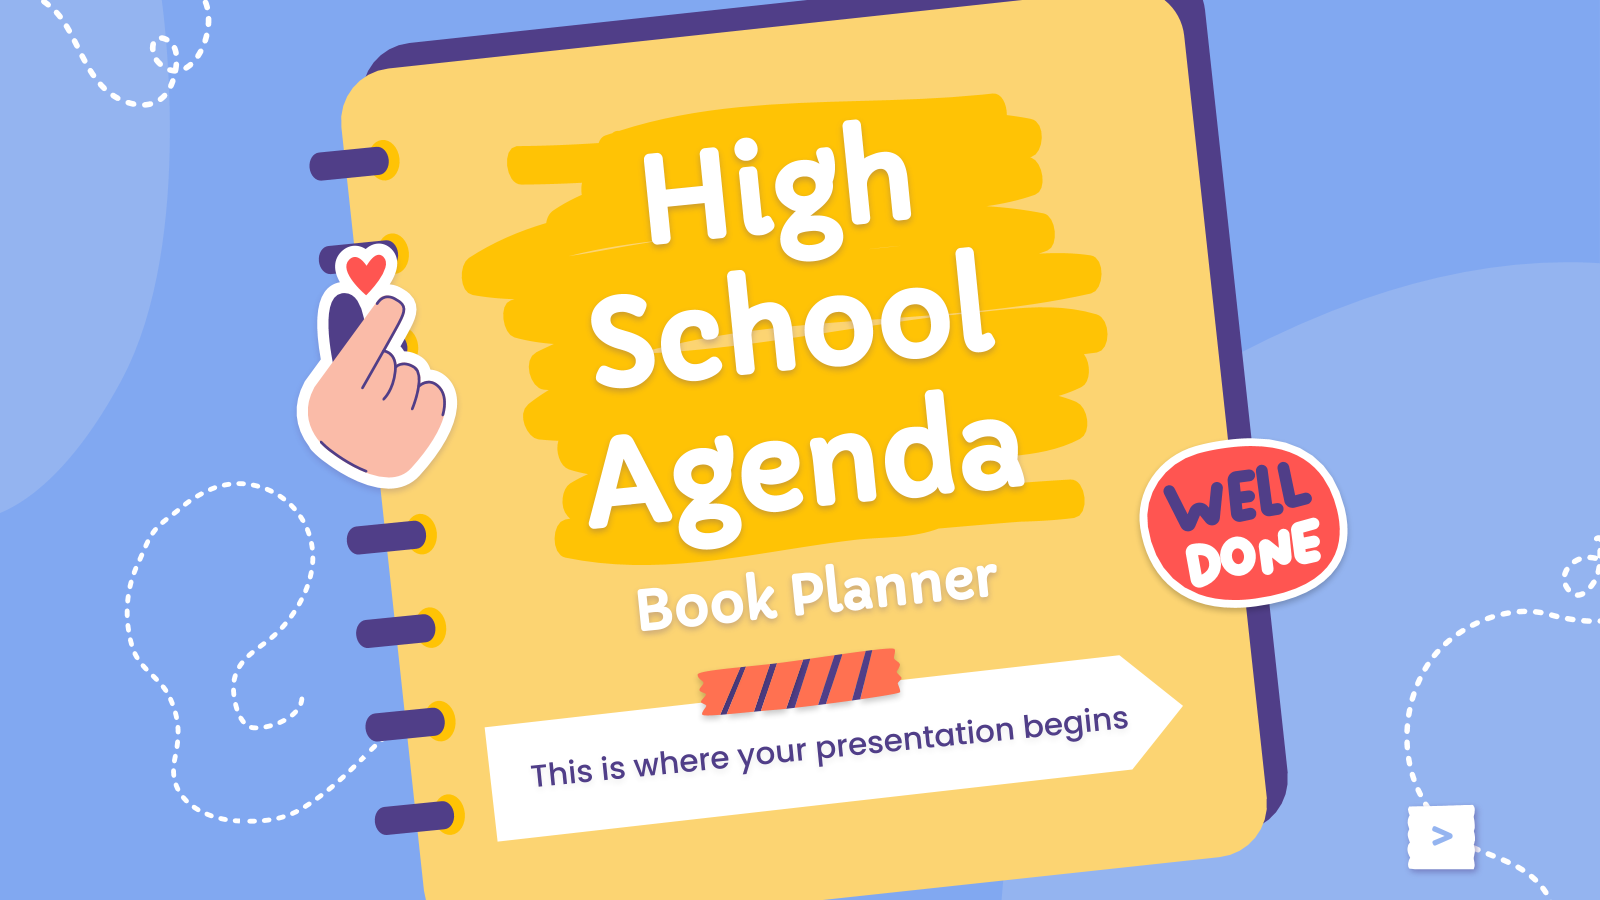 High school Agenda - Book Planner presentation template